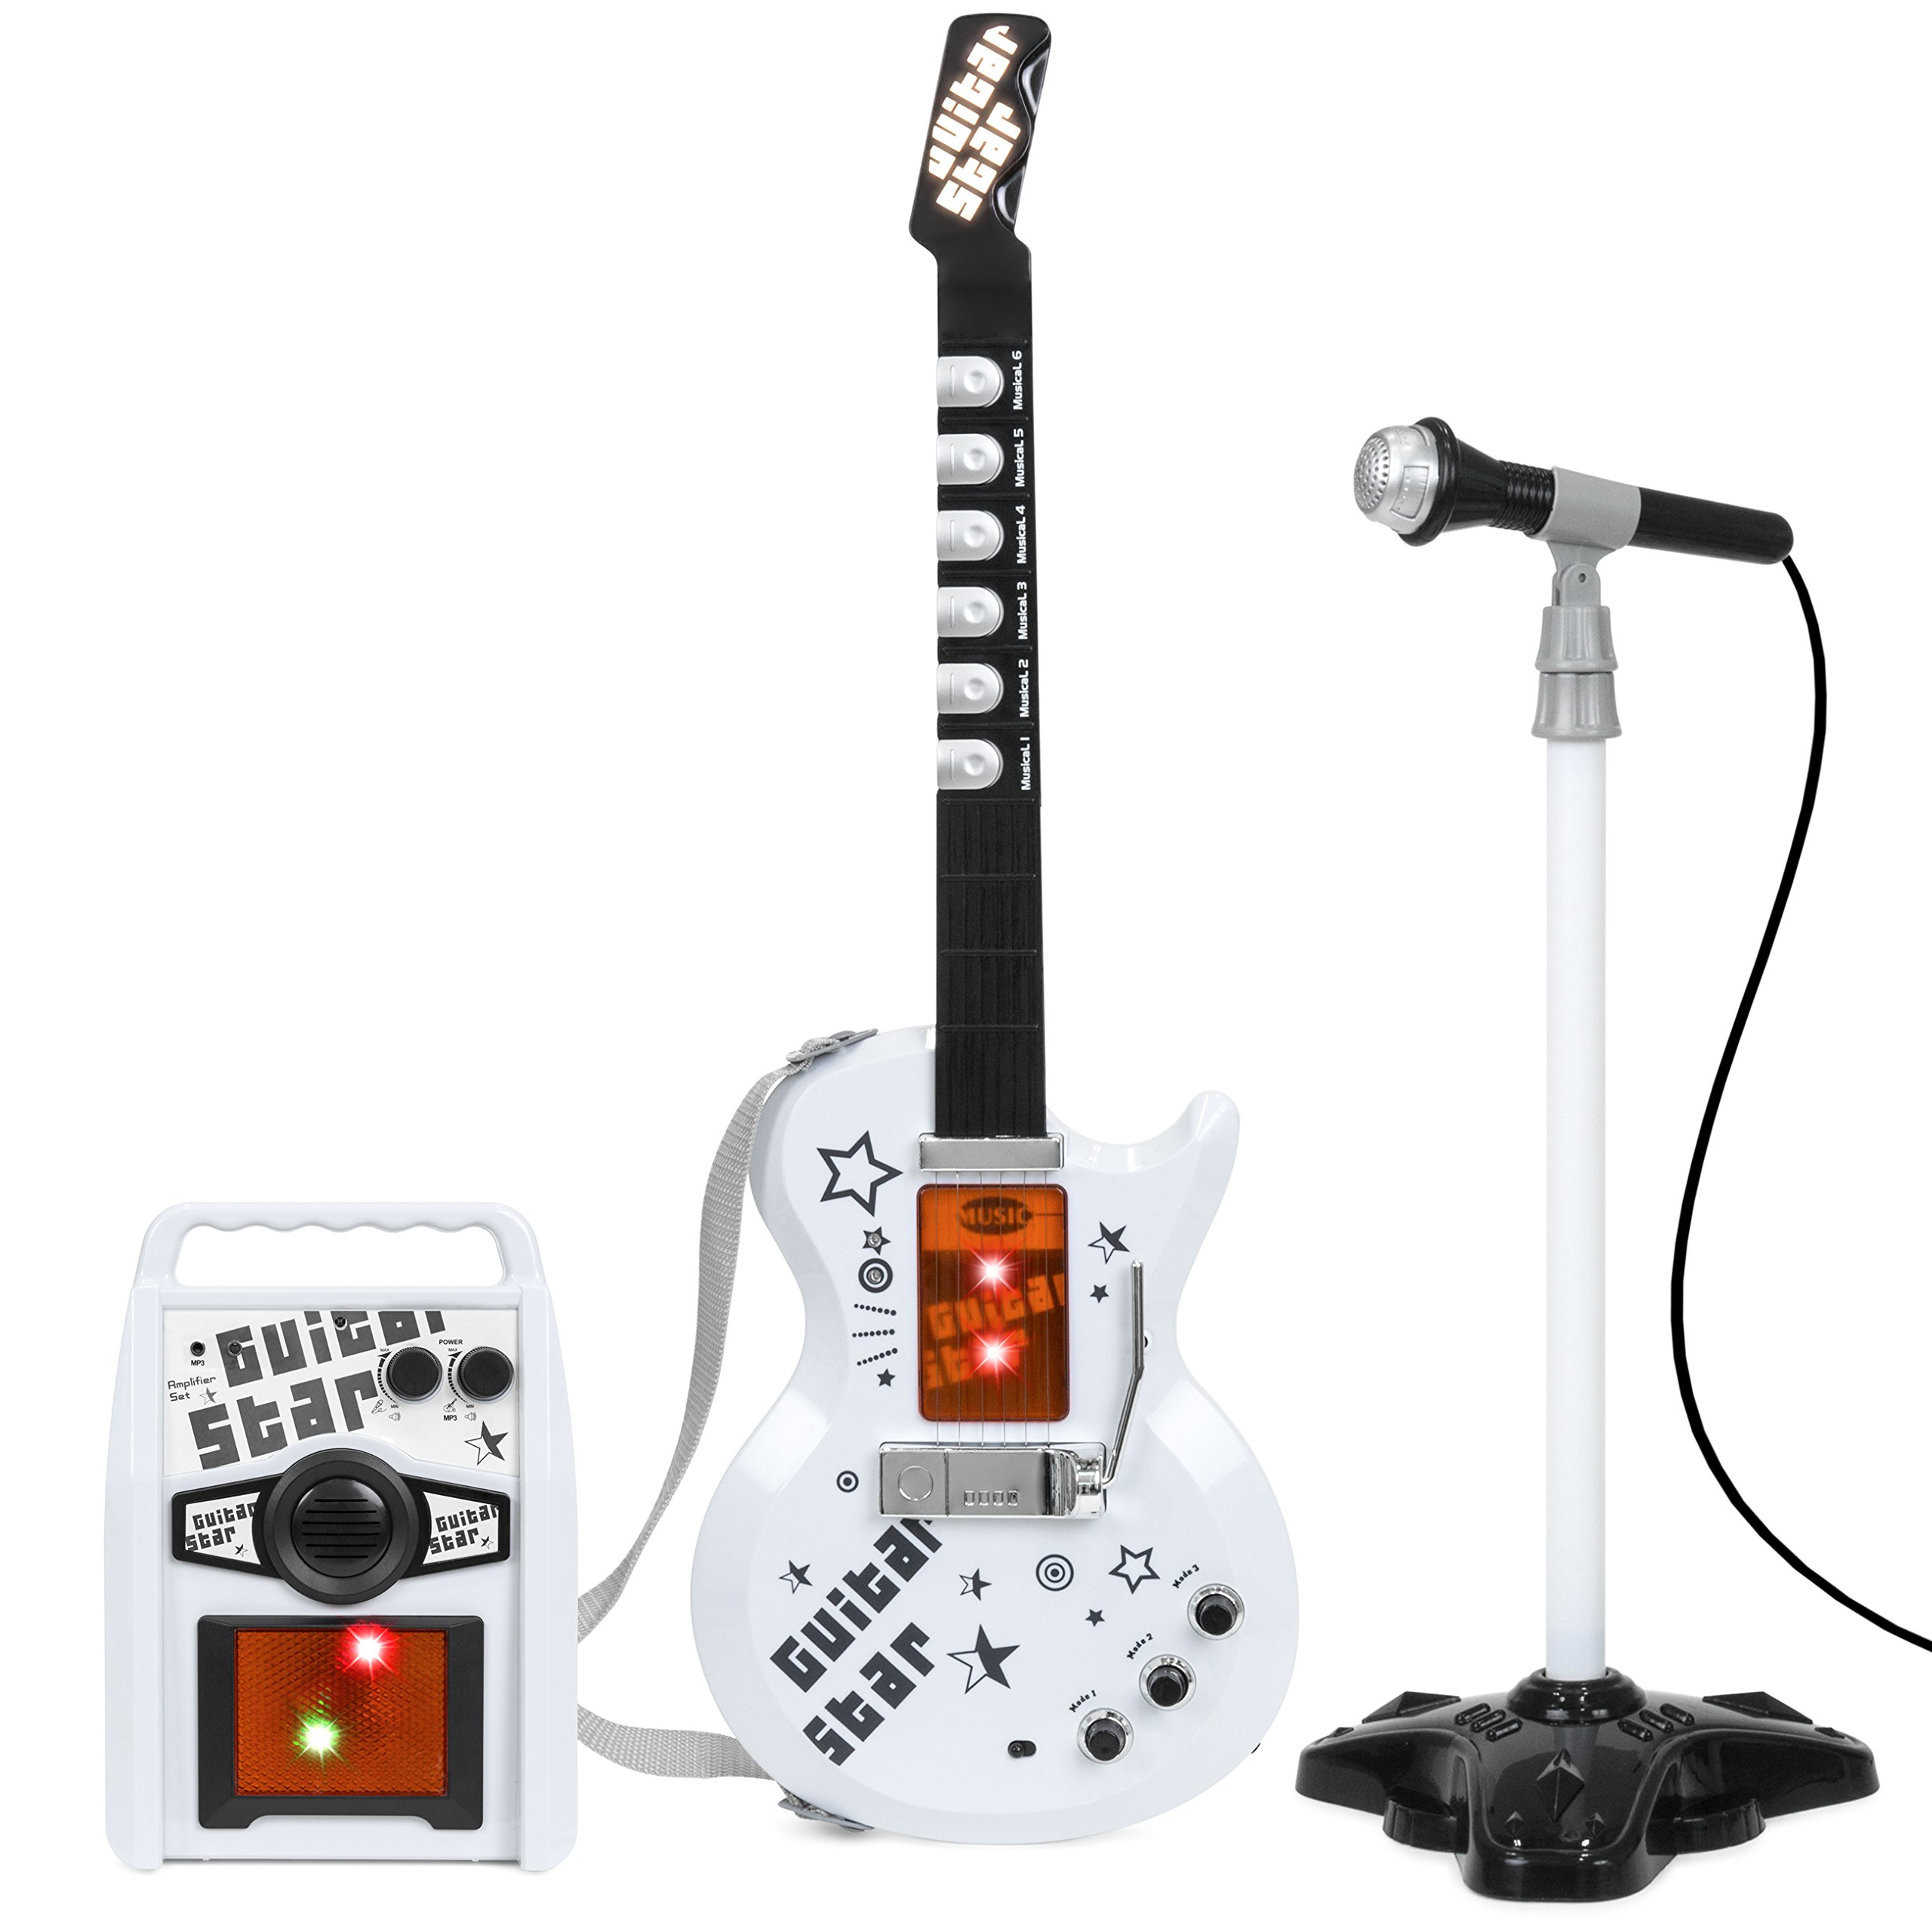 Best Choice Products Kids Electric Guitar Play Set with Whammy Bar, Microphone, Amp, AUX, White